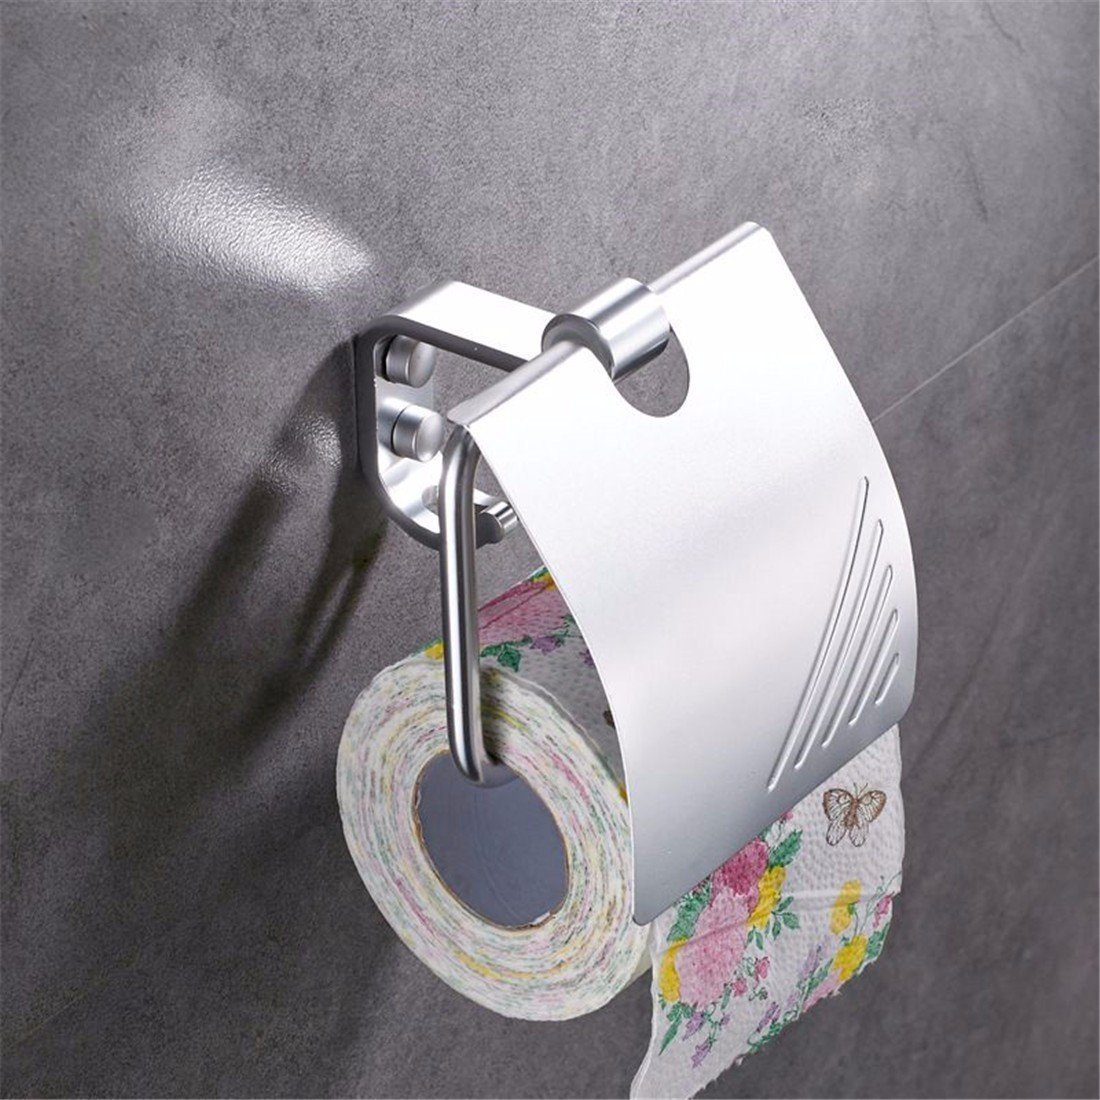 FACAIG The aluminum works light toilet paper holder bathroom accessories set by FACAIG (Image #2)